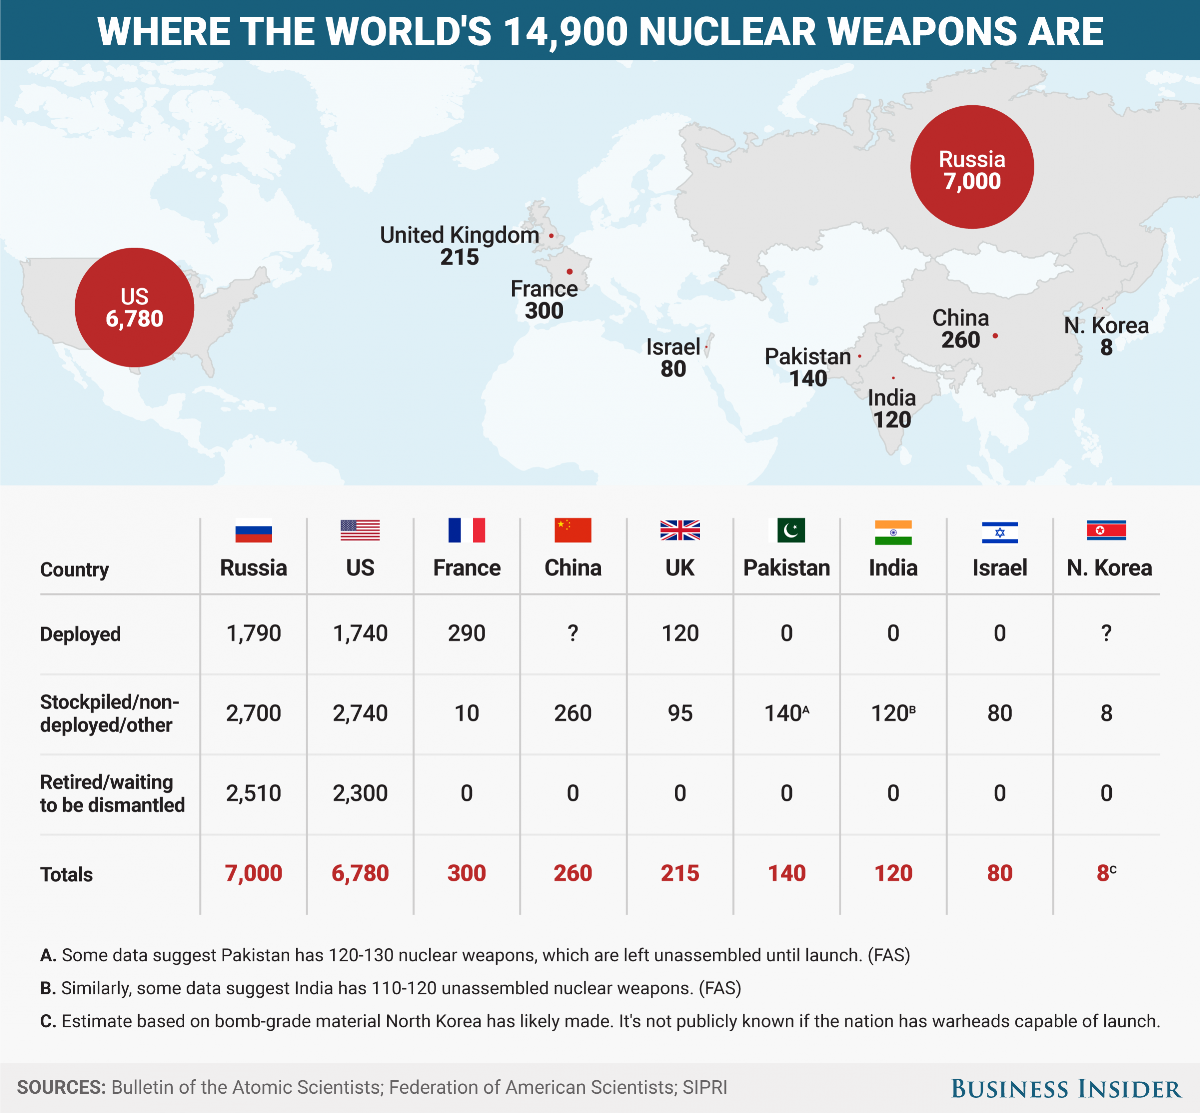 Nuclear Bombs by Country